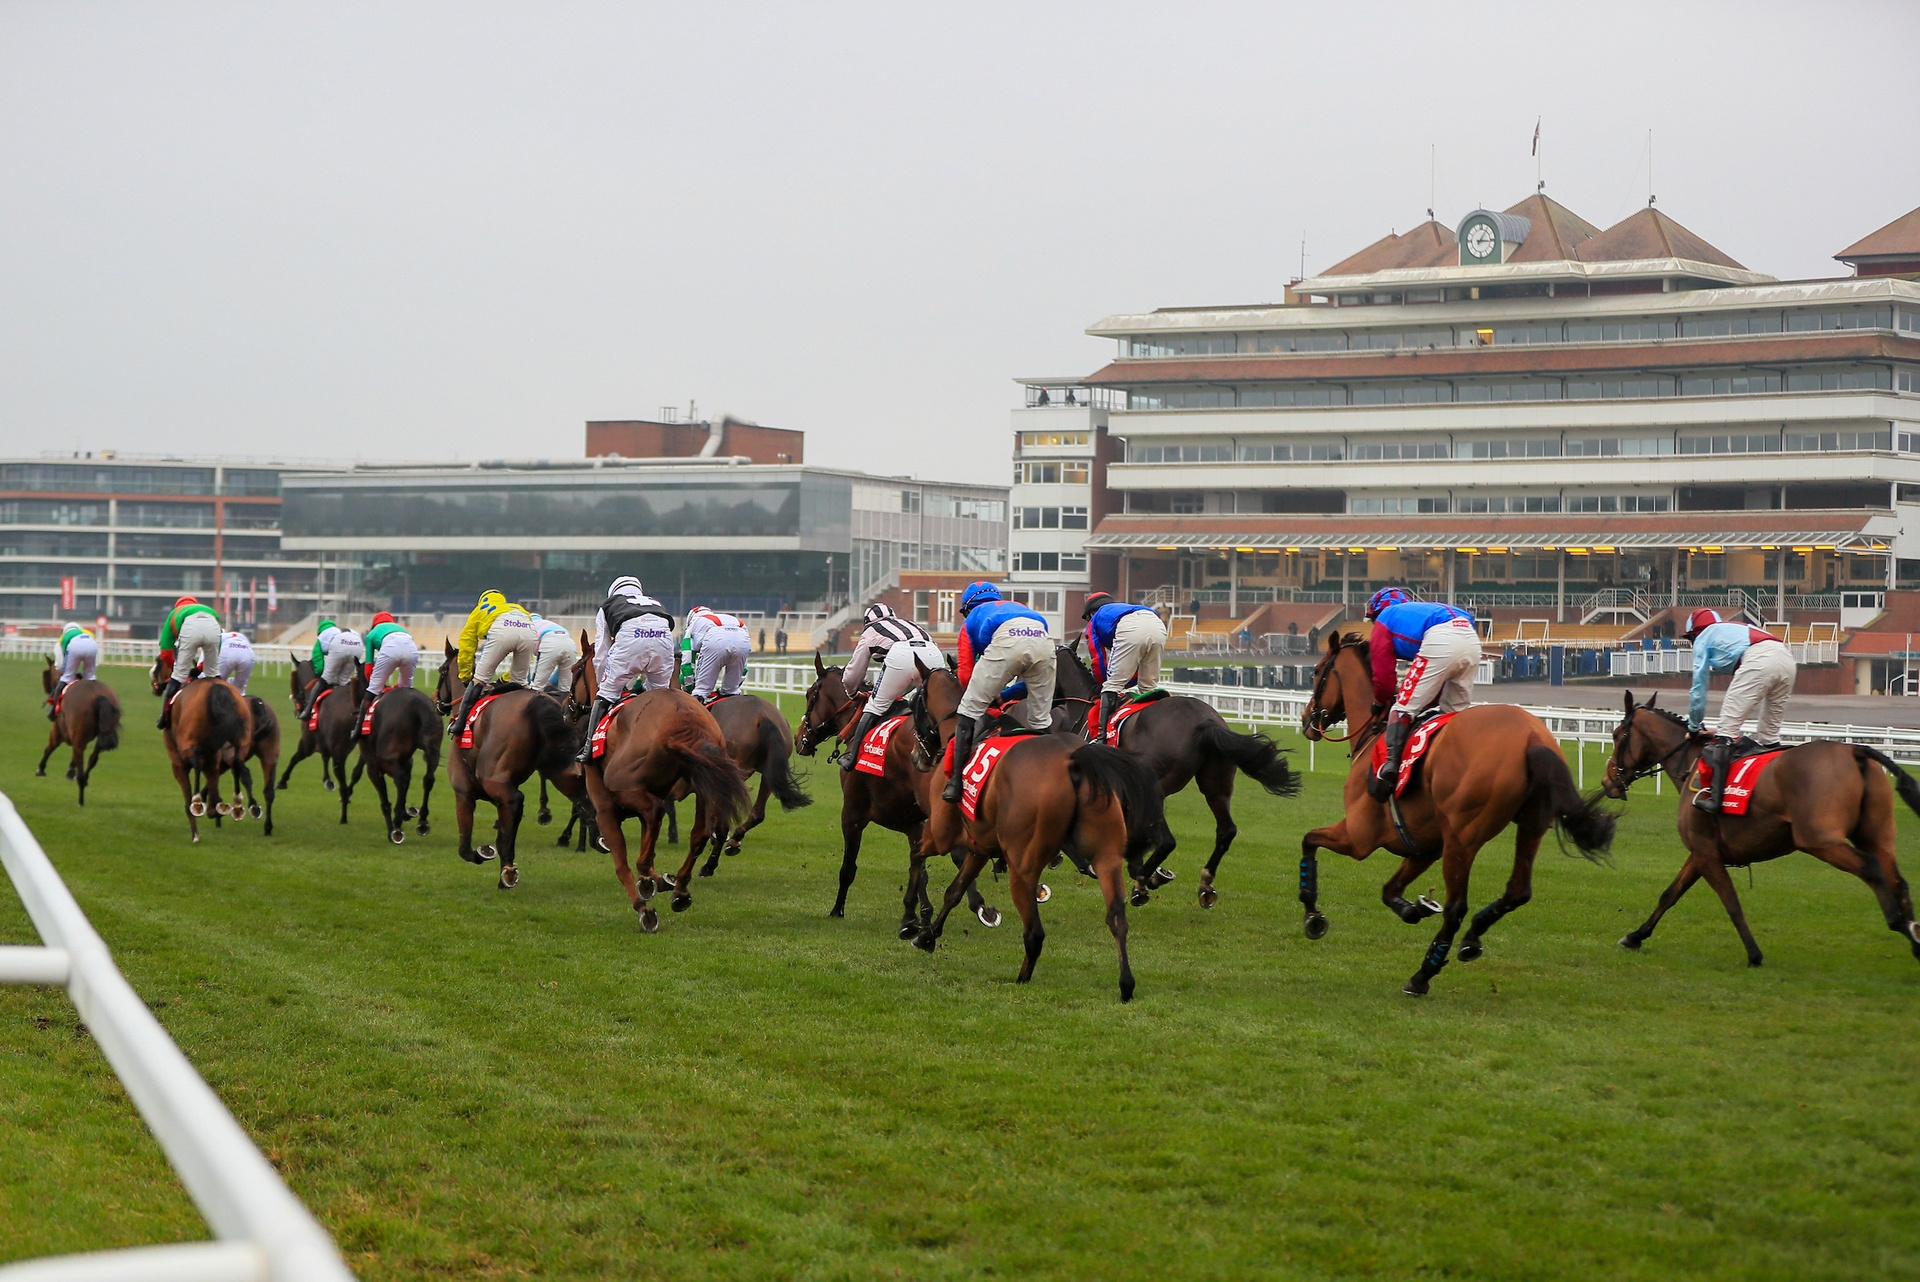 VIRGIN MEDIA TELEVISION AND RACECOURSE MEDIA GROUP EXTEND UK RACING DEAL FOR THREE YEARS